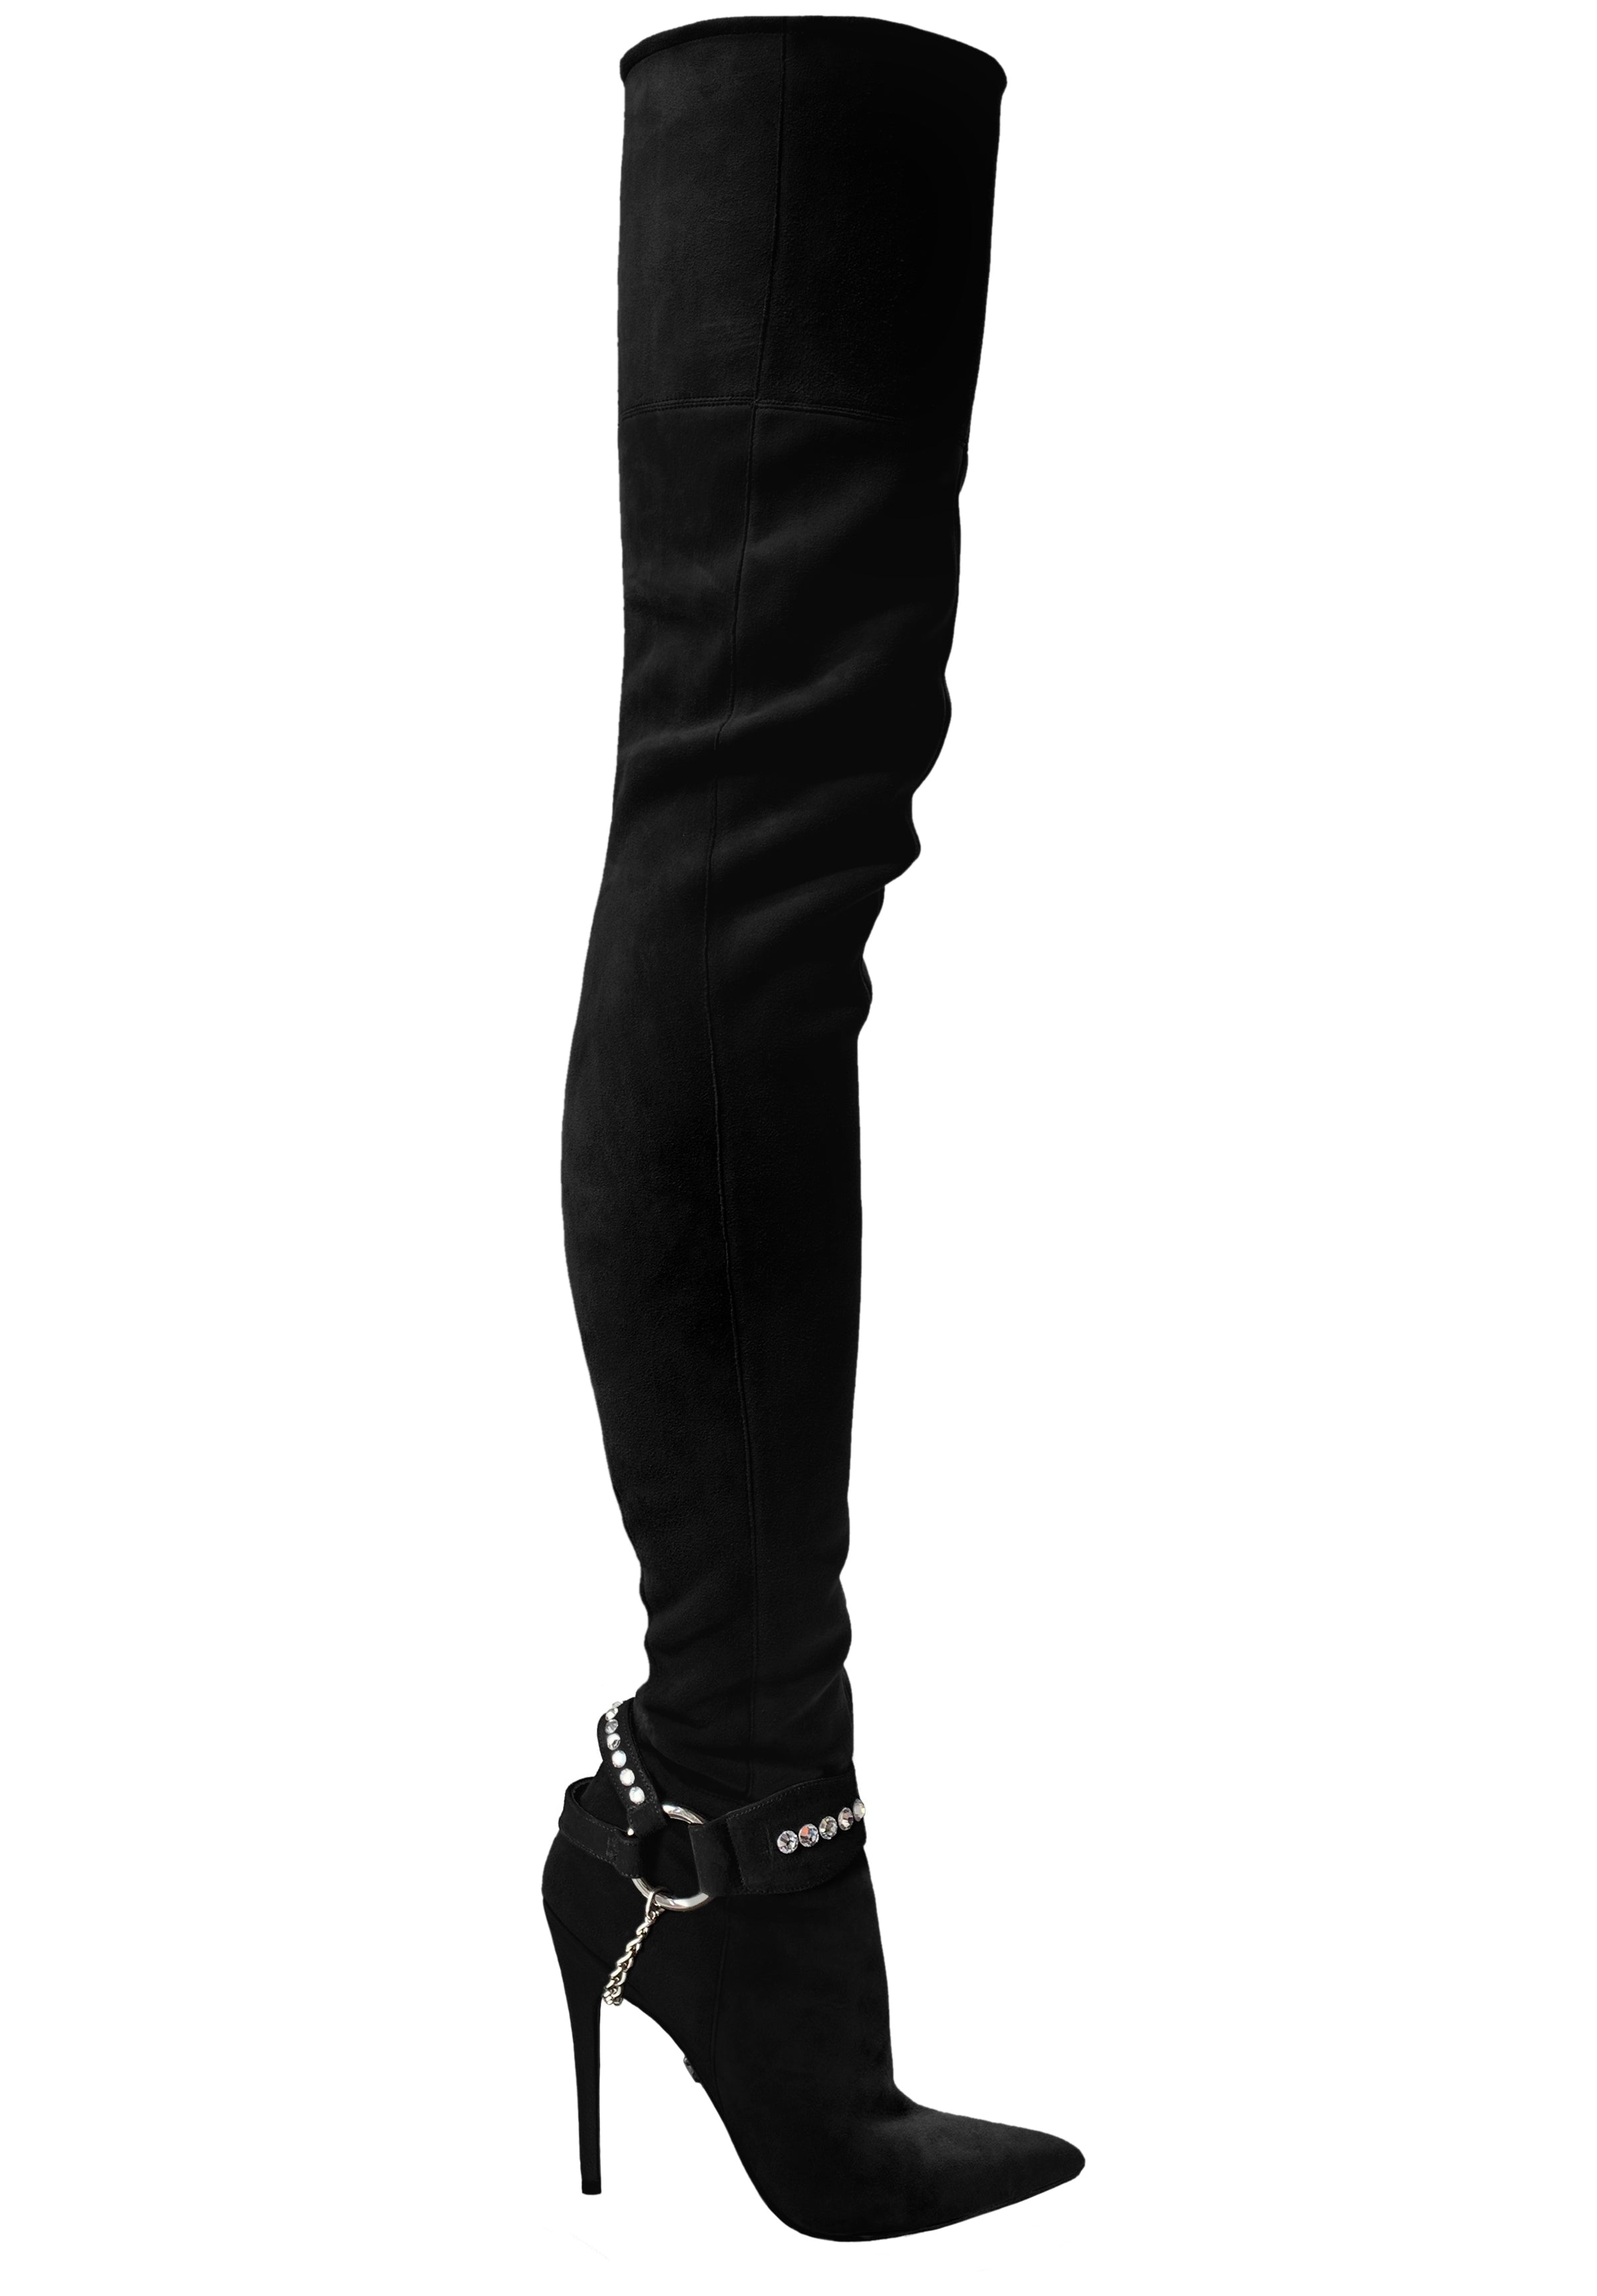 LACIA II CRYSTAL-EMBELLISHED   STRETCH SUEDE THIGH BOOT PRE-ORDER - Monika Chiang